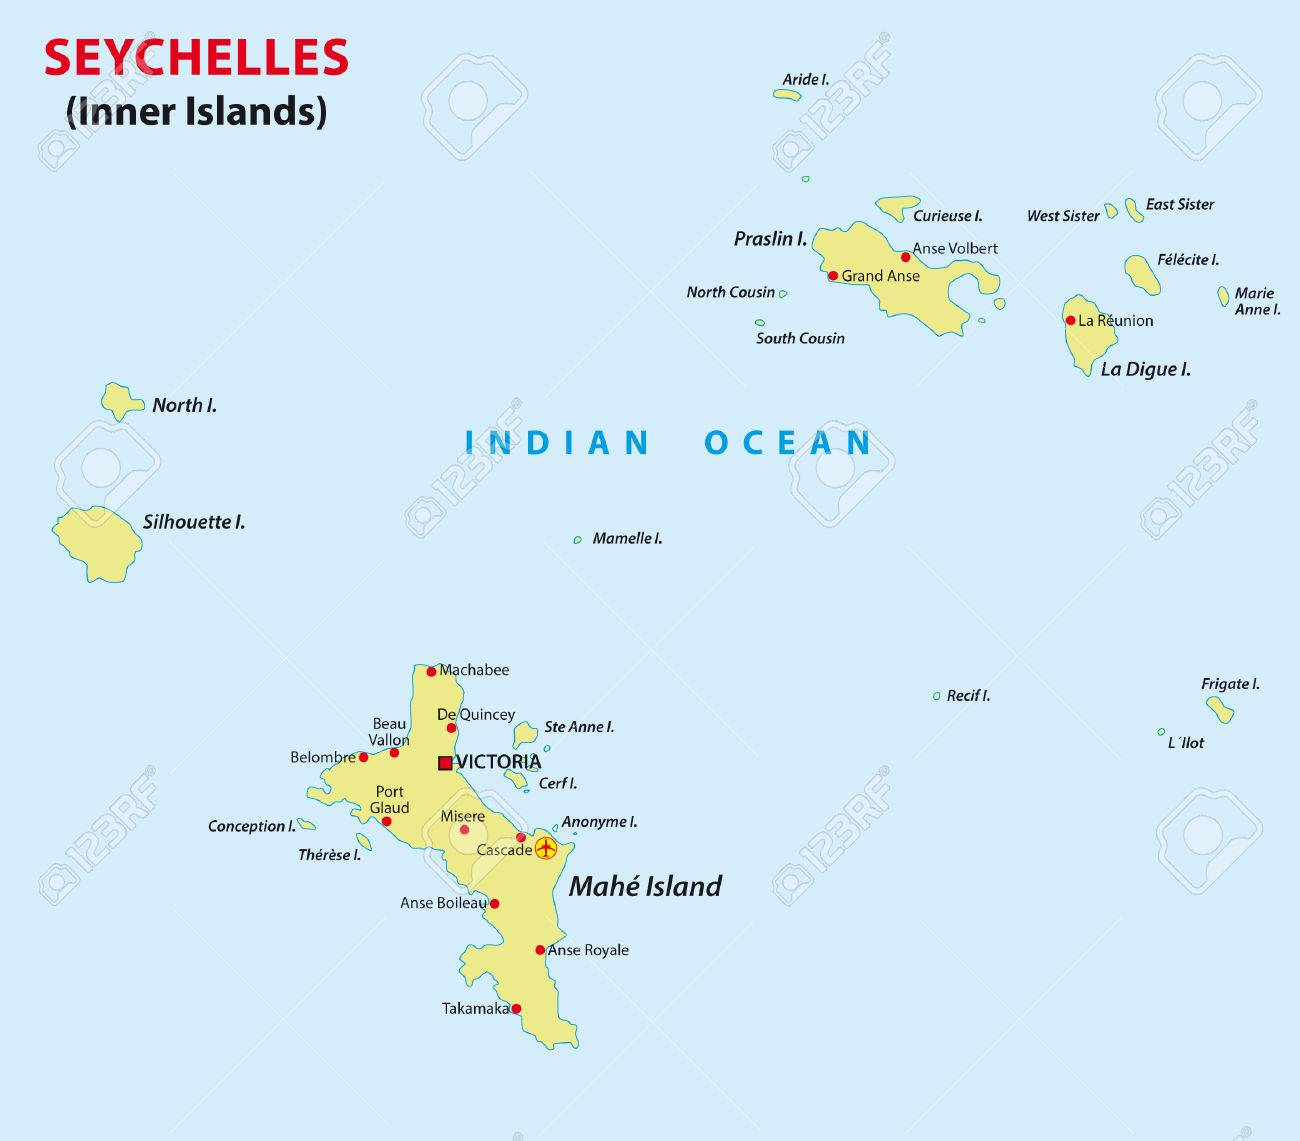 Seychelles Map Royalty Free Cliparts Vectors And Stock - Seychelles map